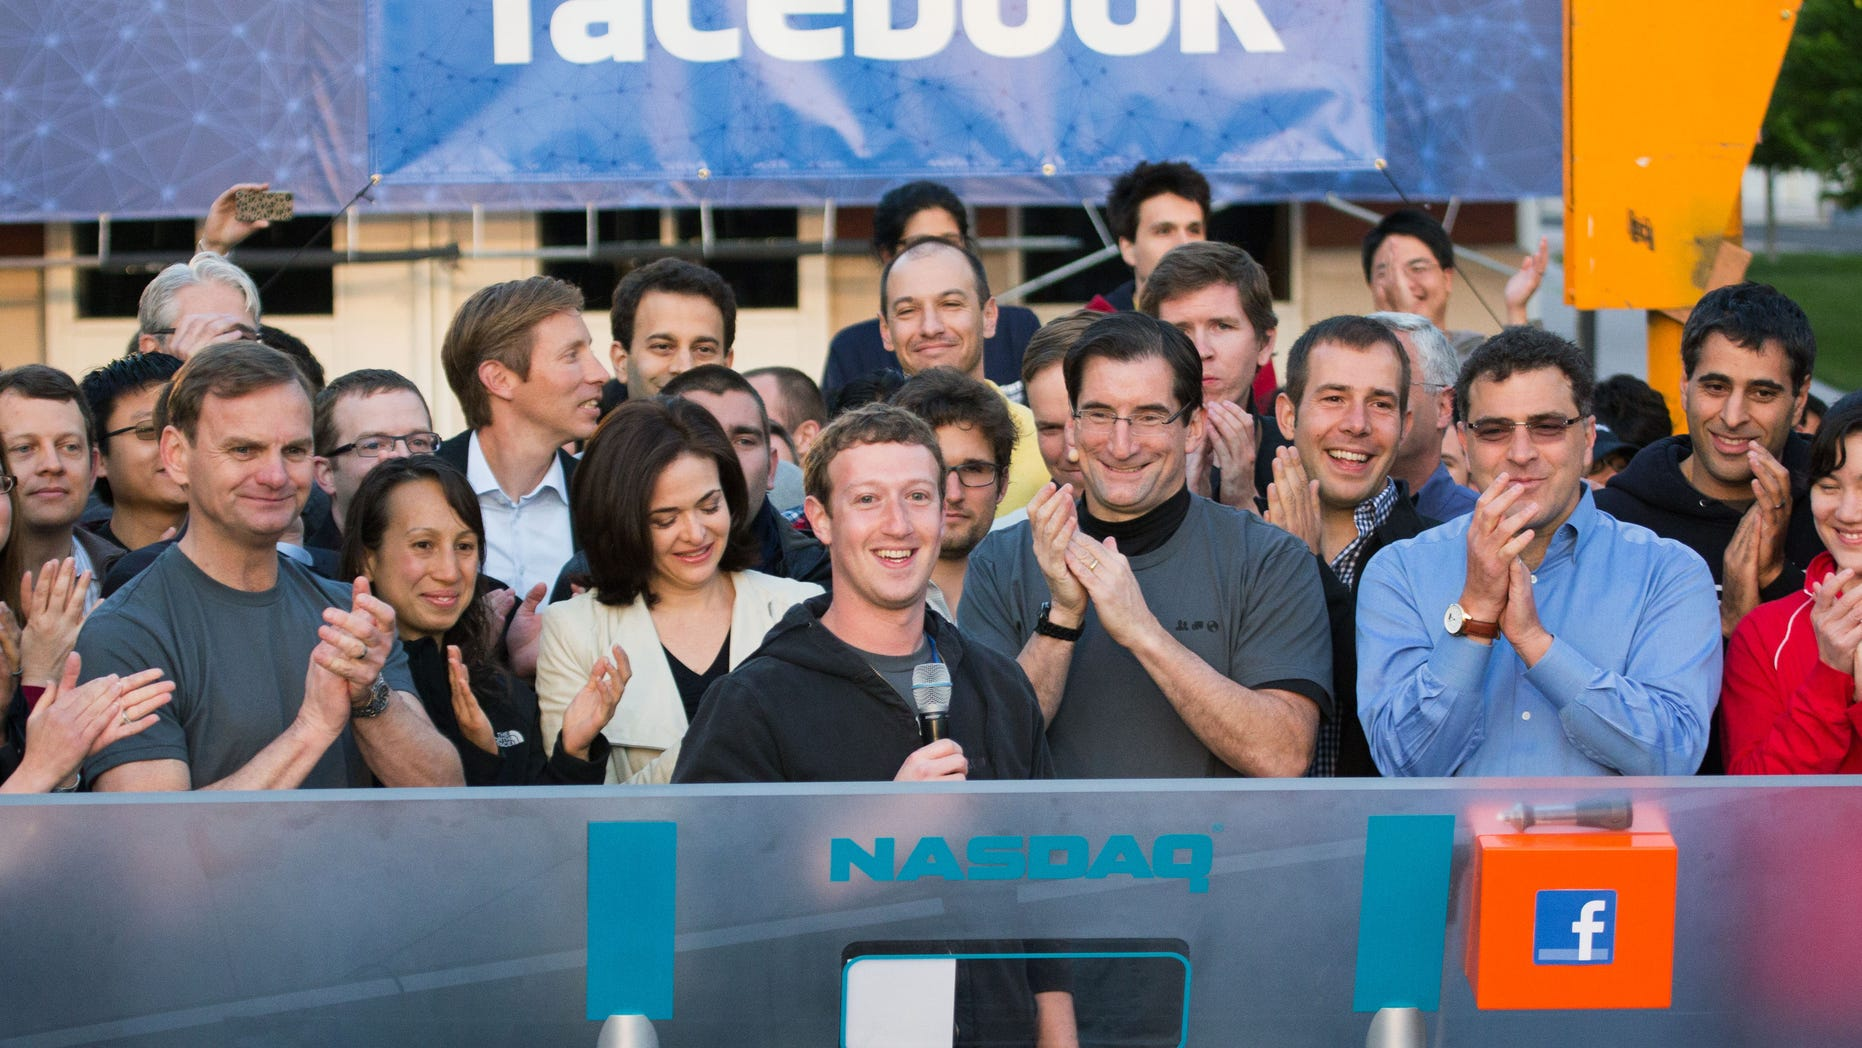 Chairman and CEO Mark Zuckerberg, center, rings the opening bell of the Nasdaq stock market.